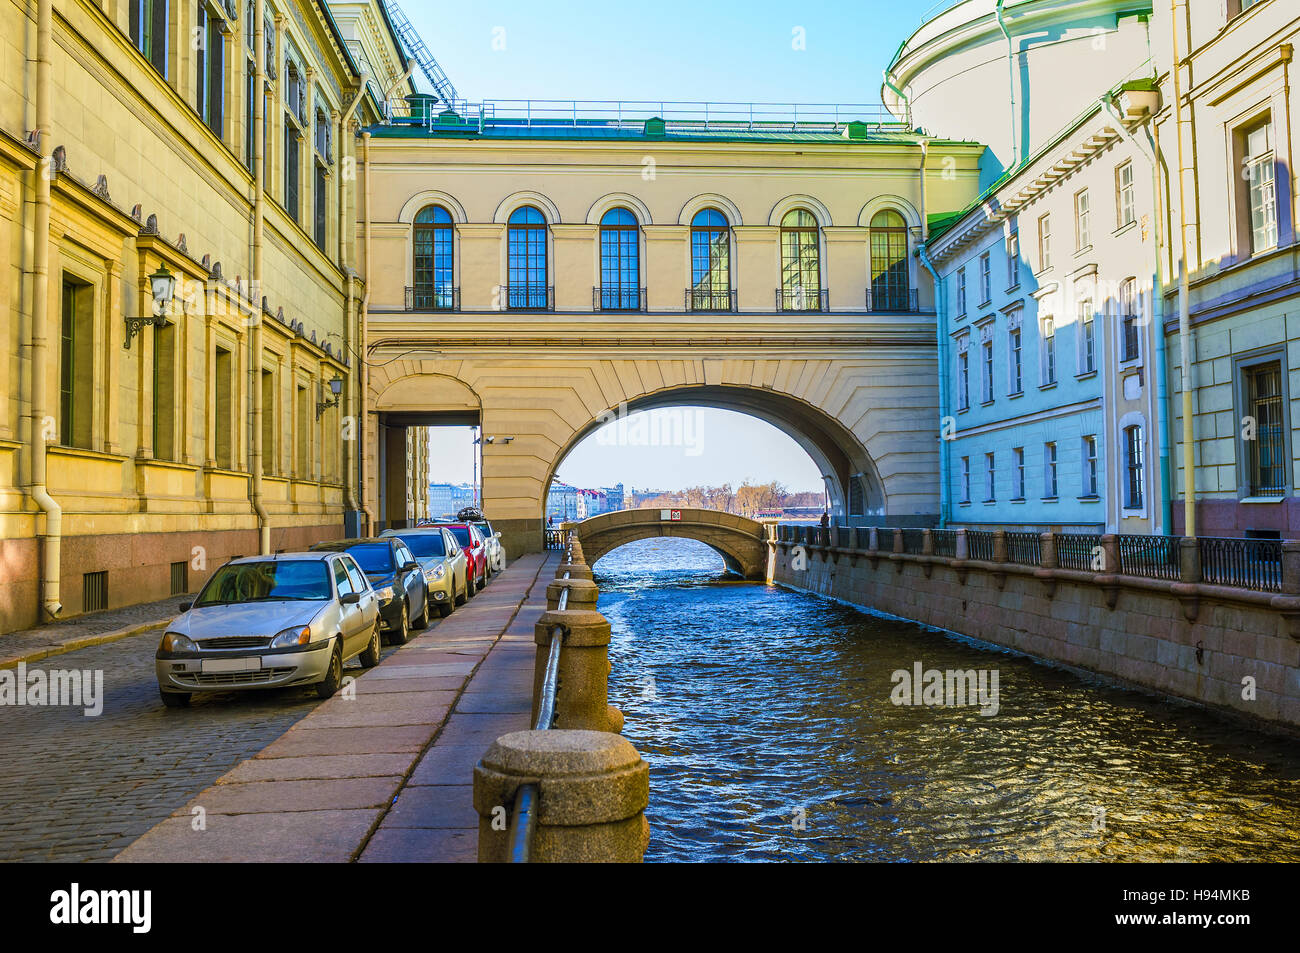 The huge arch with high windows connects the Old Hermitage with the Hermitage Theatre, Sain Petersburg, Russia. - Stock Image